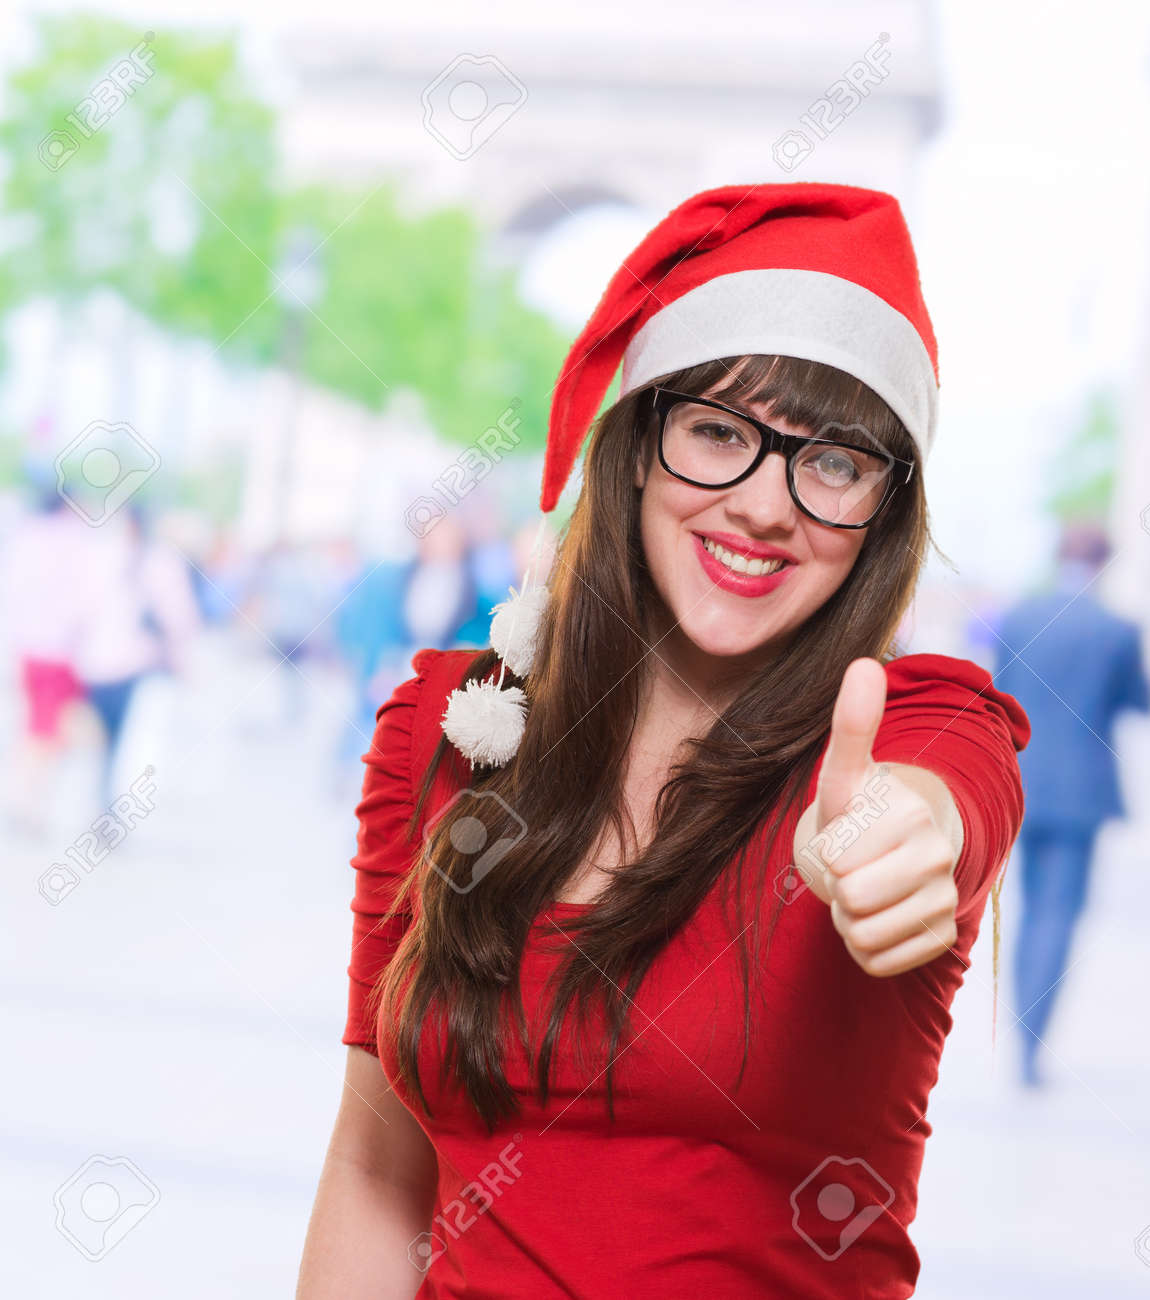 christmas woman doing a thumbs up gesture, outdoor Stock Photo - 16290846